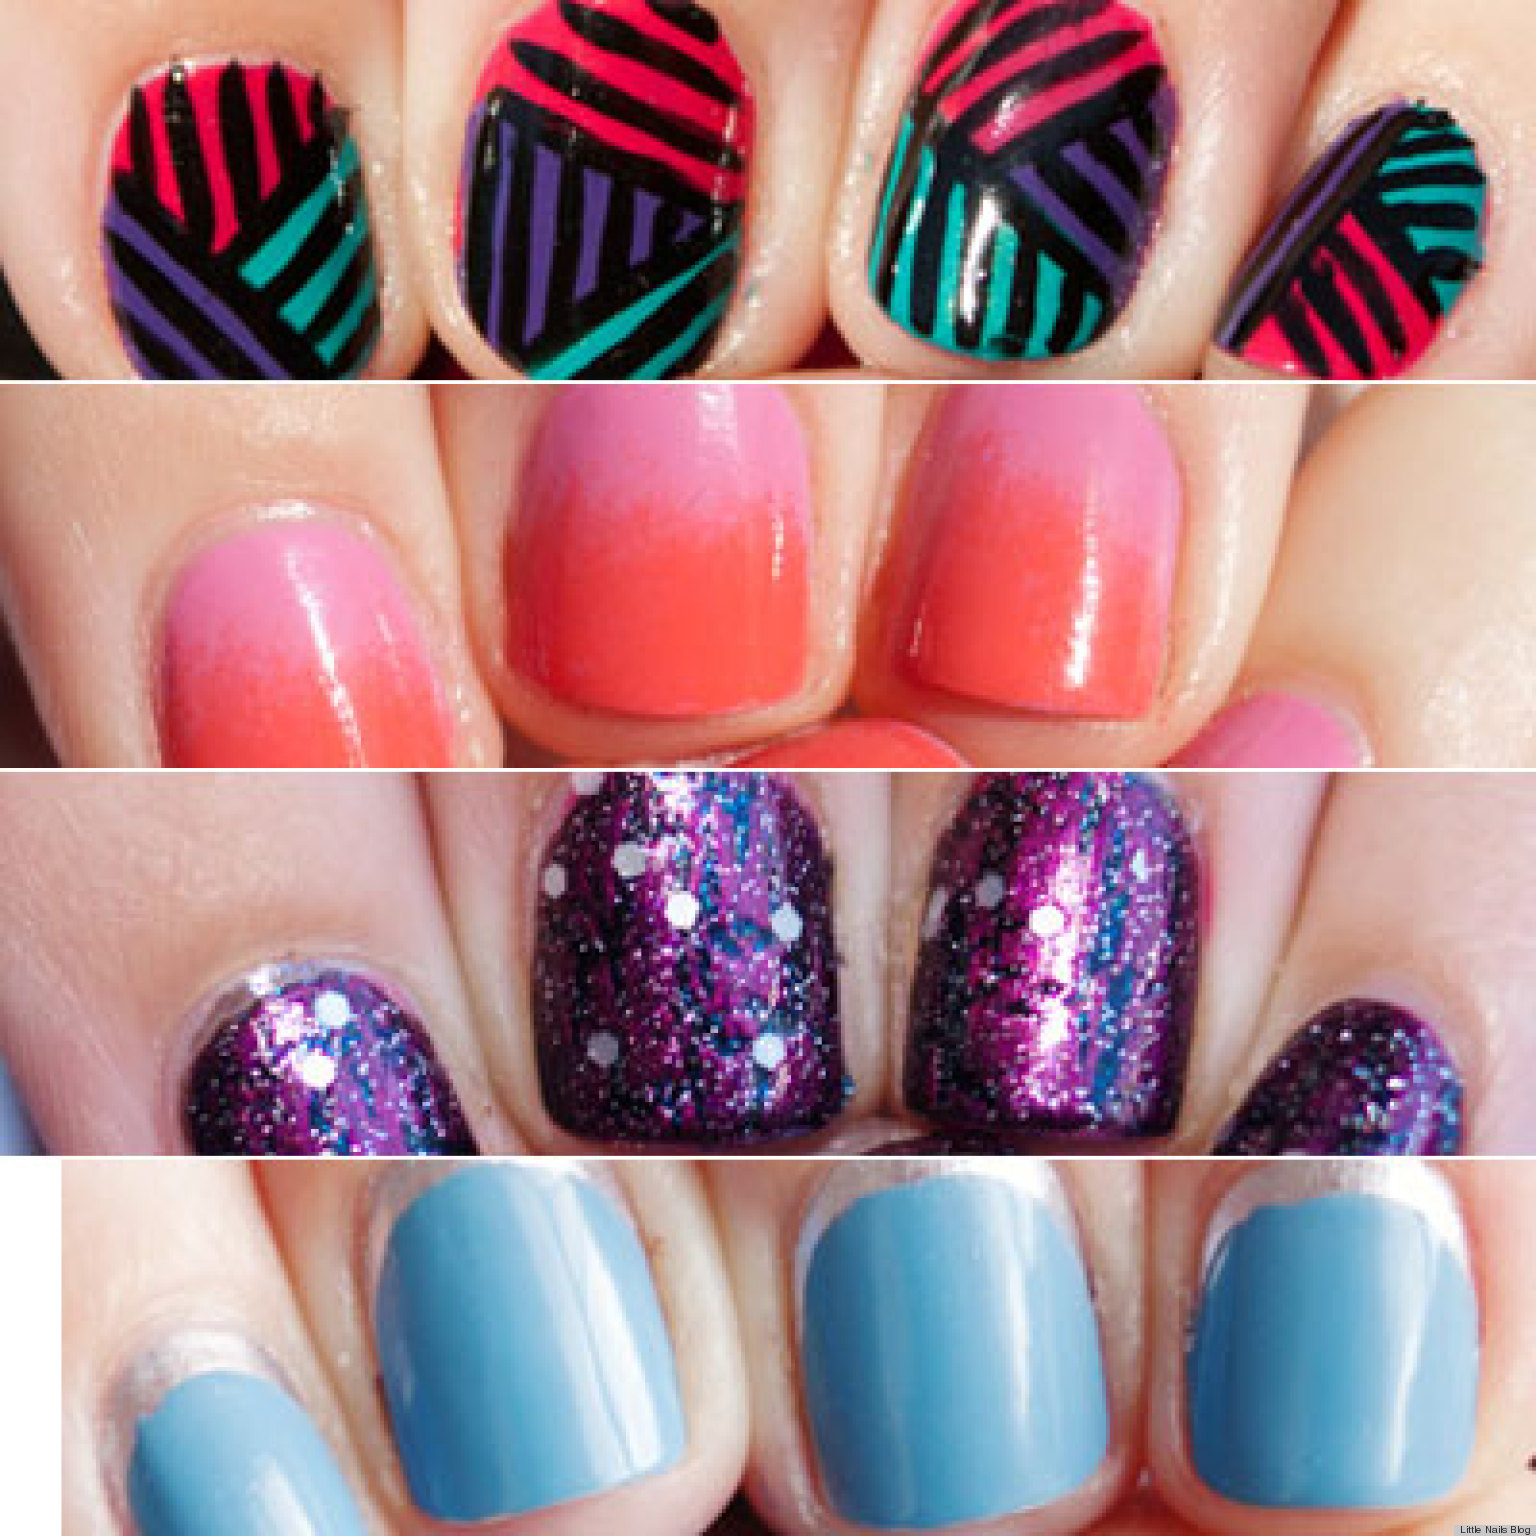 13 nail art ideas for teeny tiny fingertips photos huffpost prinsesfo Choice Image